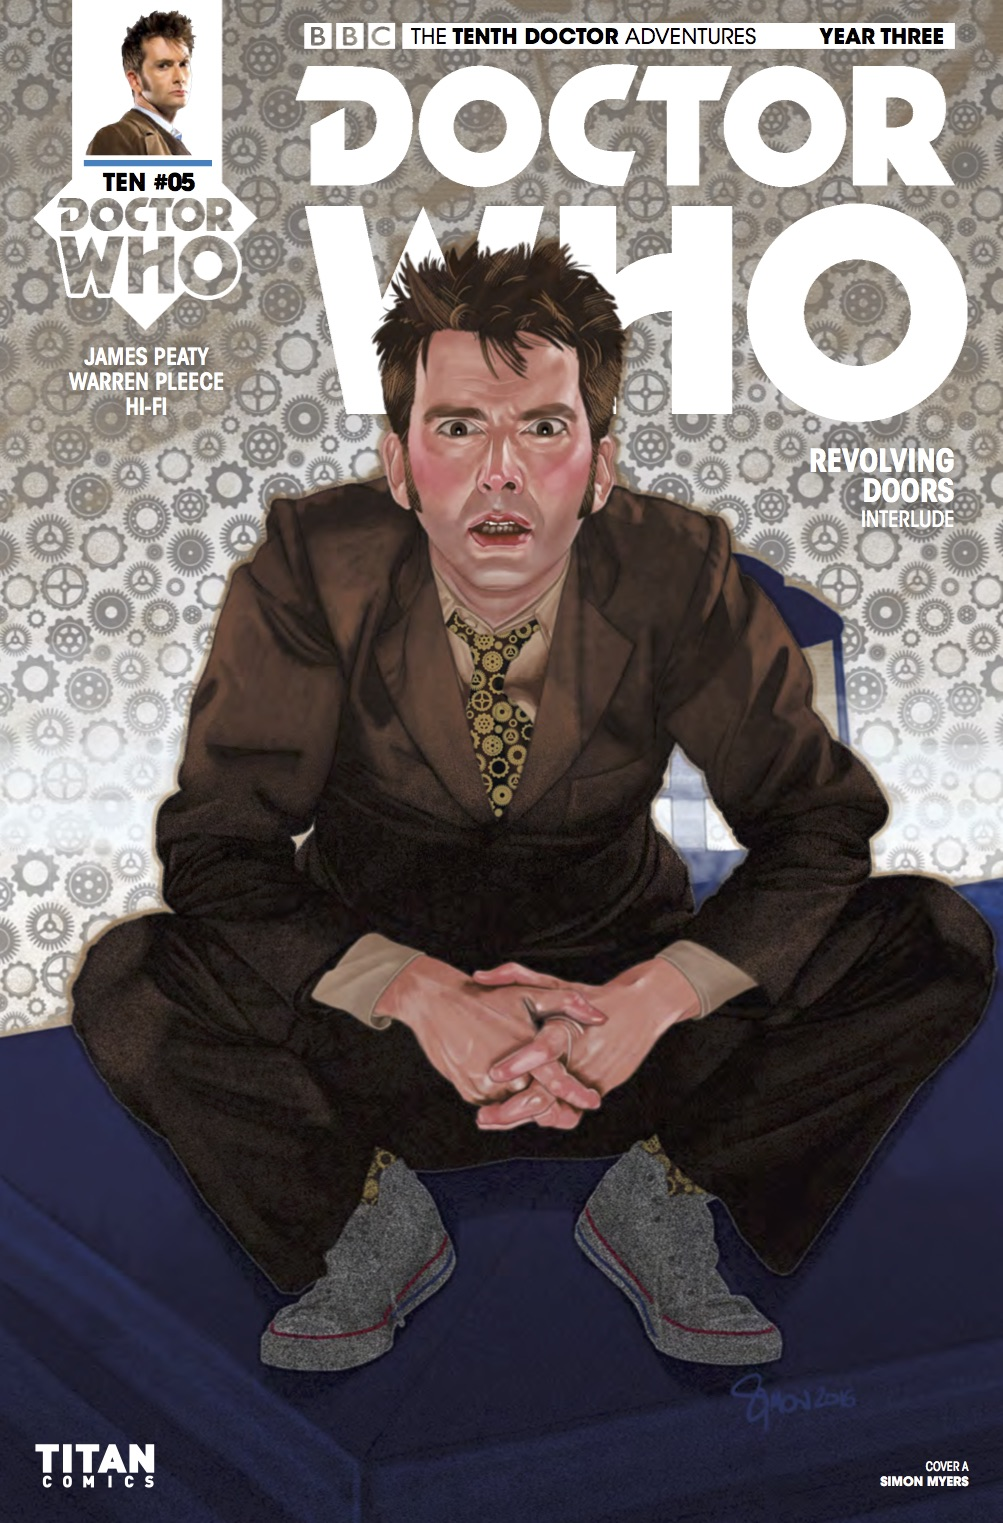 TENTH_DOCTOR 3.5 Cover A (Credit: Titan / Simon Myers)